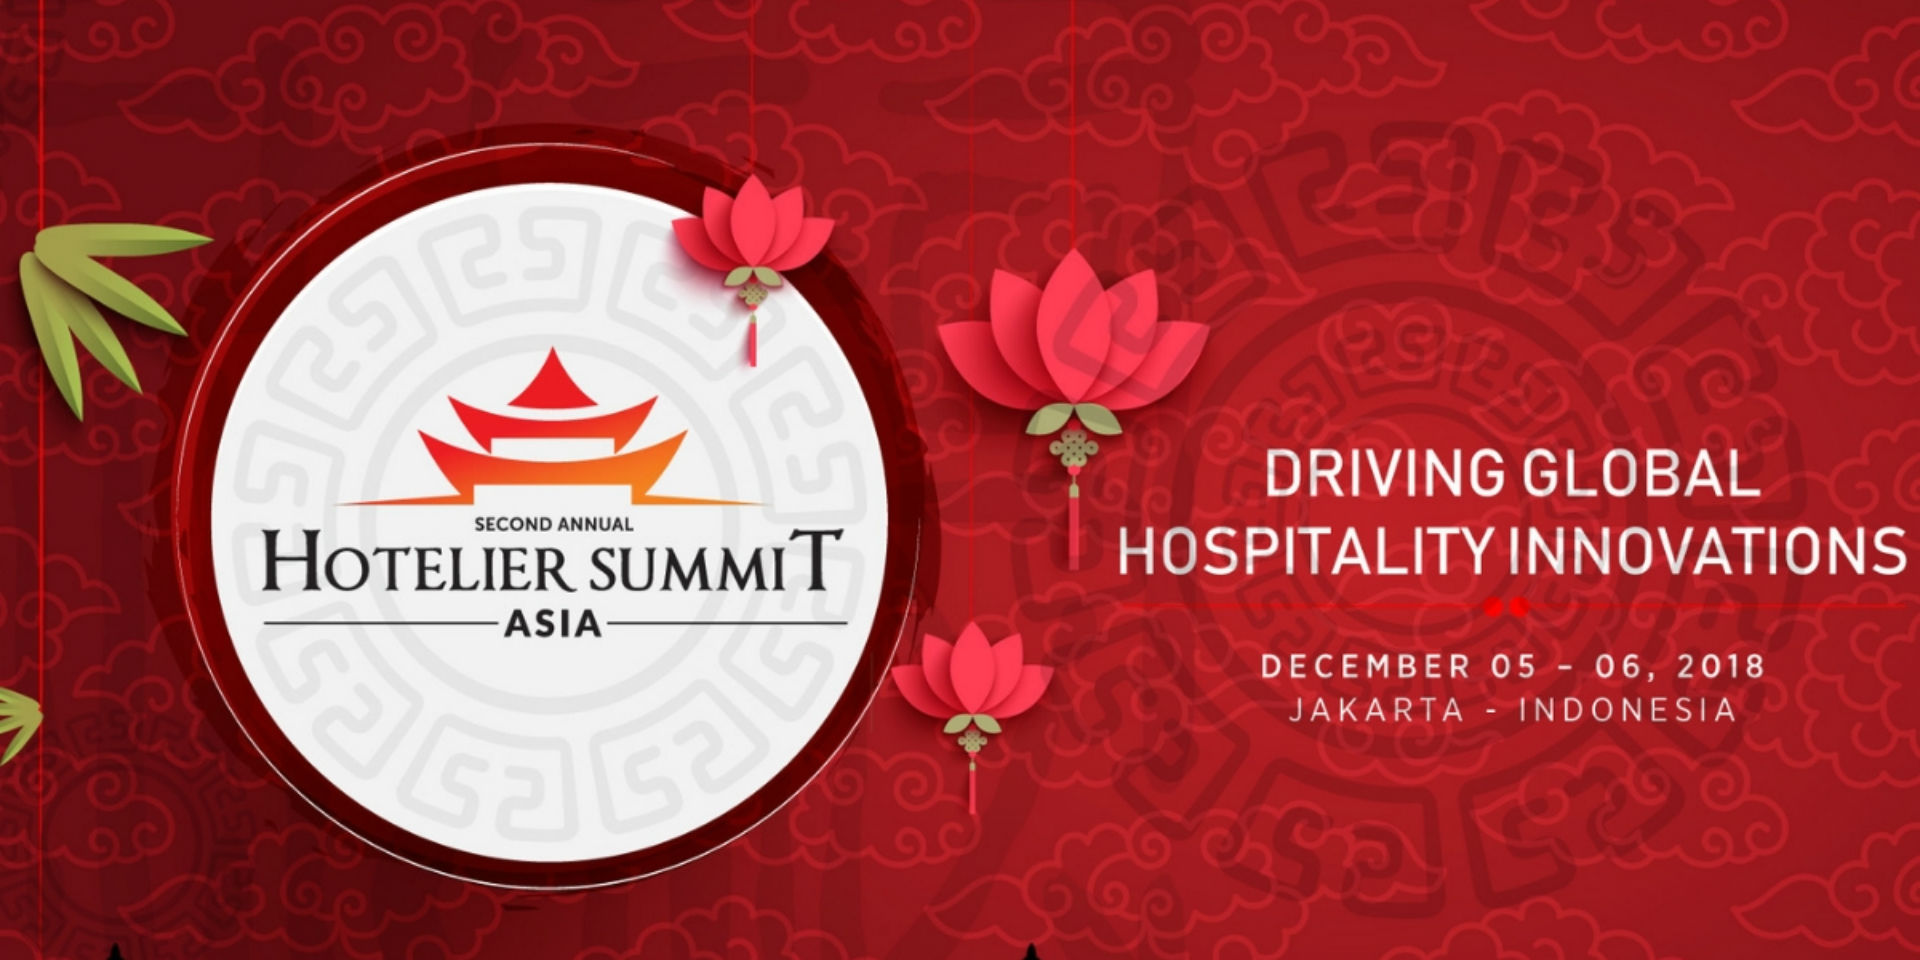 Hotelier Summit Asia 2018 to be held on Dec 5-6 in Jakarta